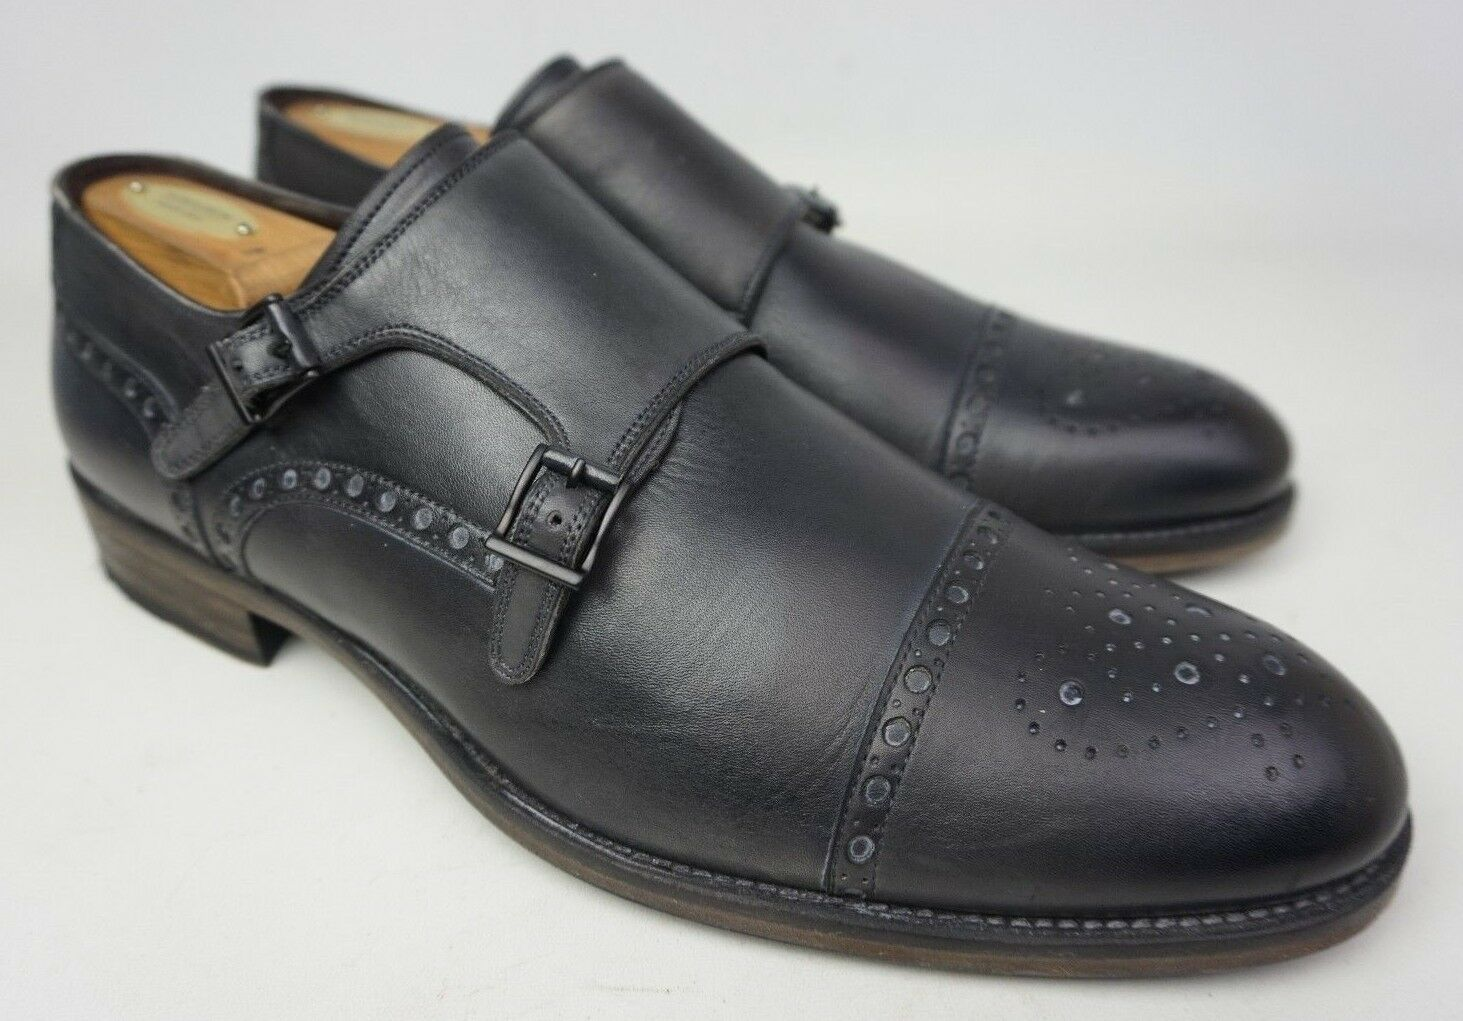 Magnanni Tauro Brogue Double Monk Strap Grey Leather Men's shoes Size 12 M